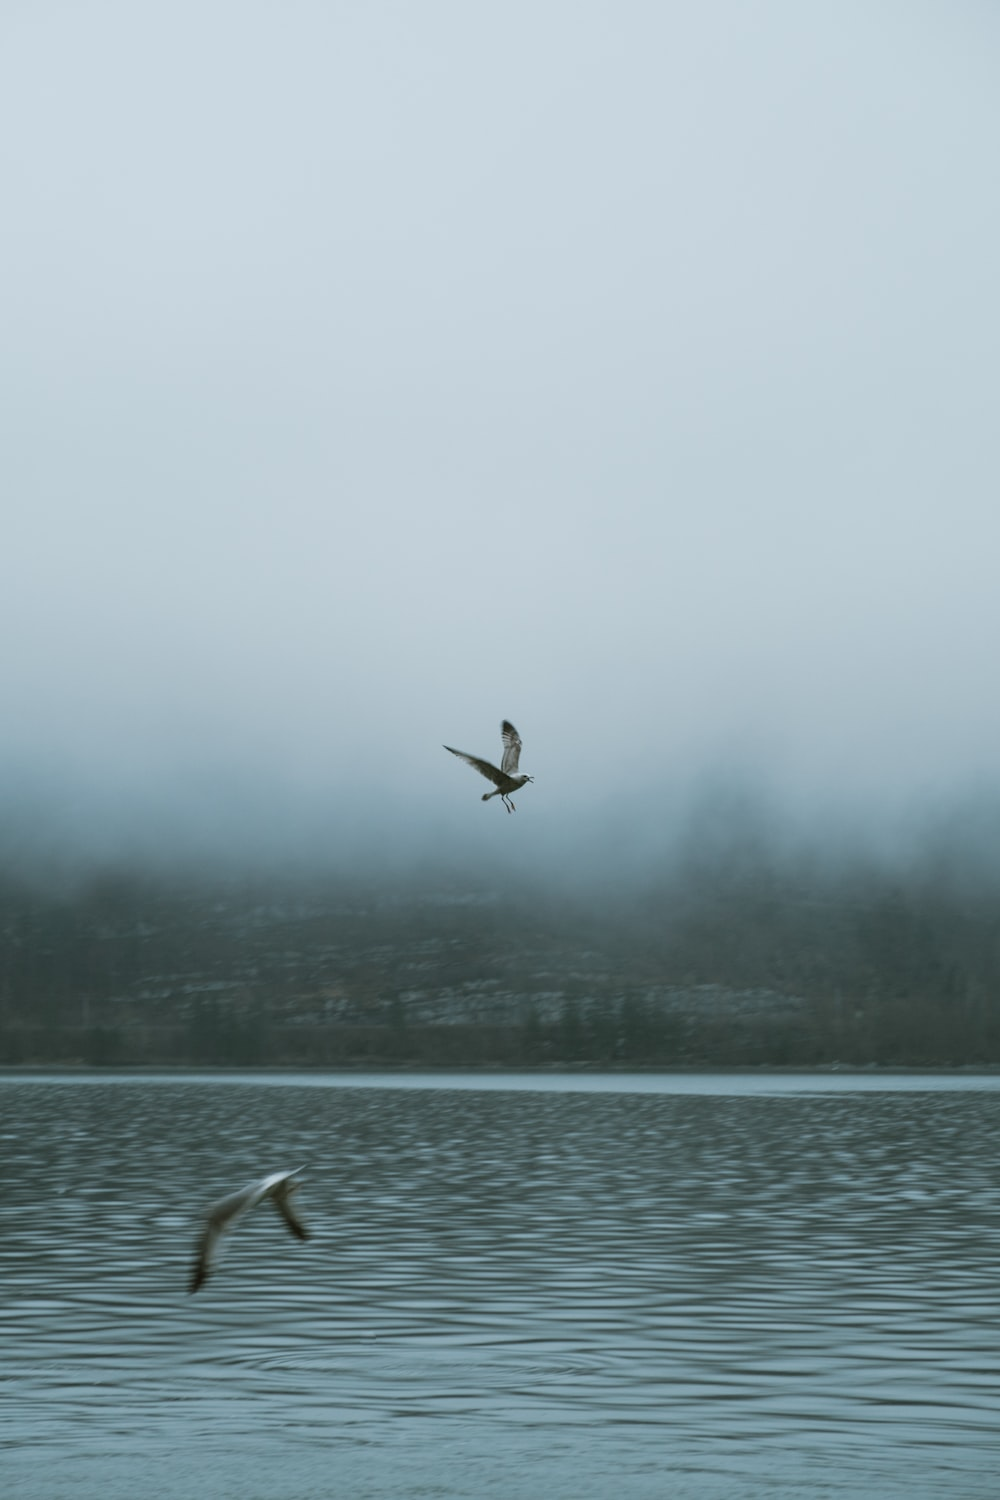 two birds flying on mid air above body of water during daytime